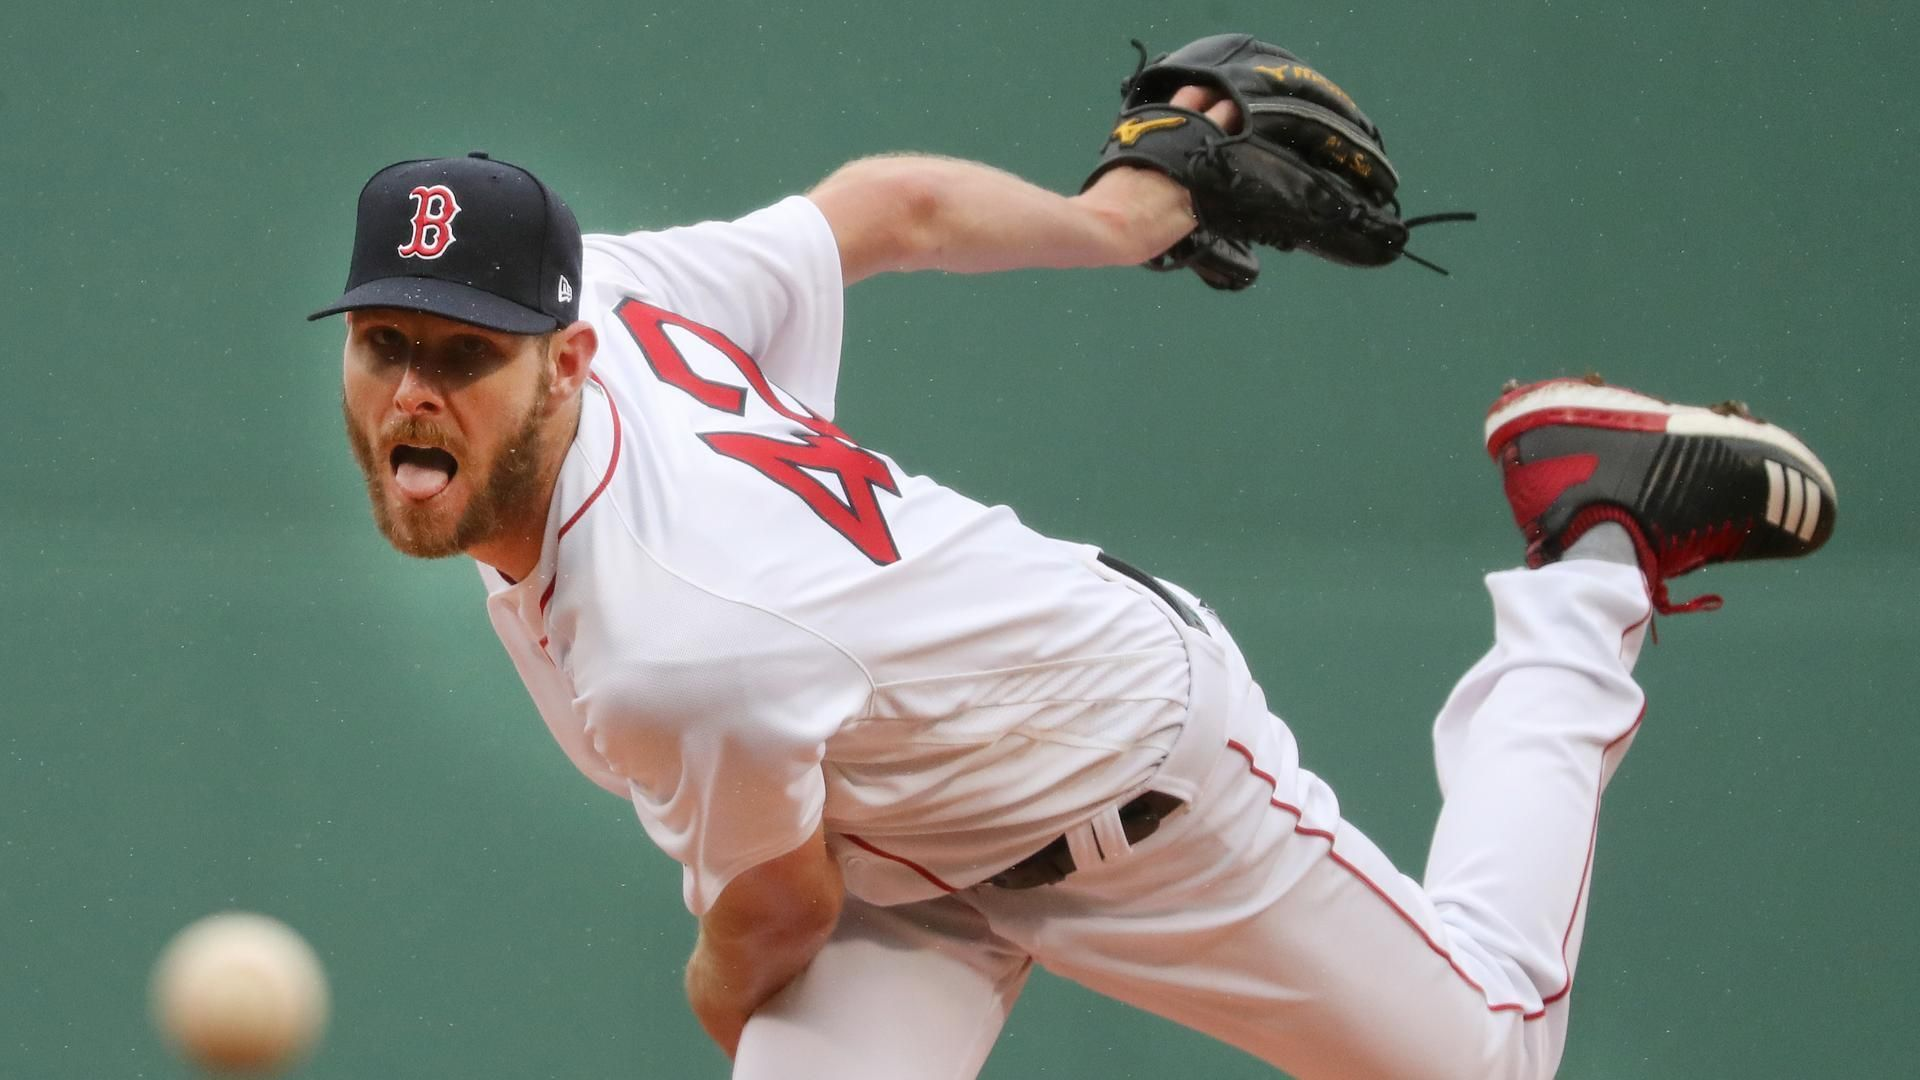 99ef1e75bcf Boston MA 4/14/18 Boston Red Sox starting pitcher Chris Sale delivers a  pitch against the Baltimore Orioles during first inning action at Fenway  Park (photo ...